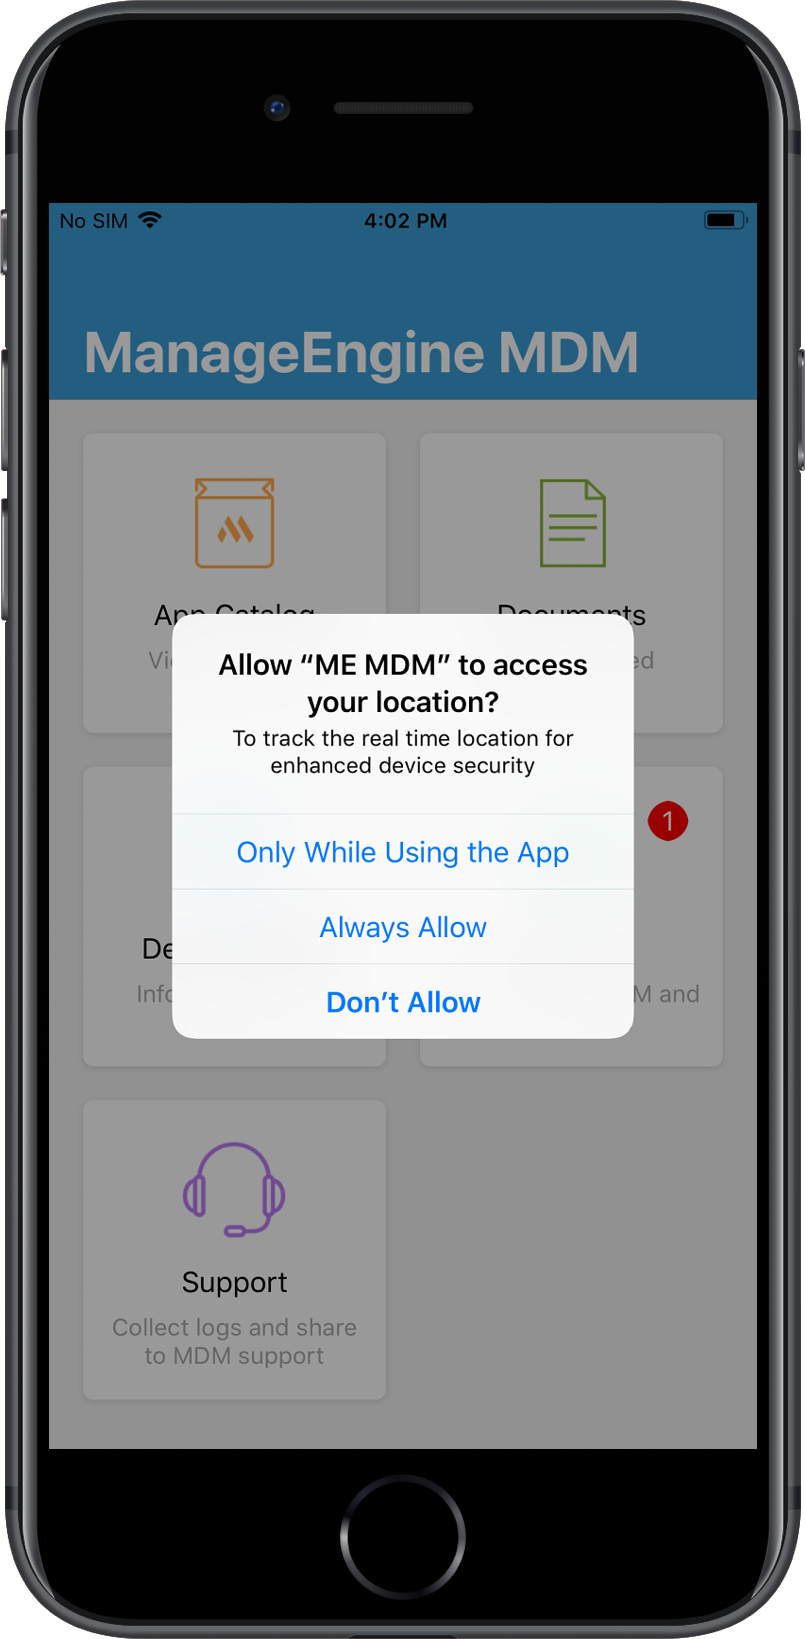 Granting permission to ME MDM app for Geolocation tracking